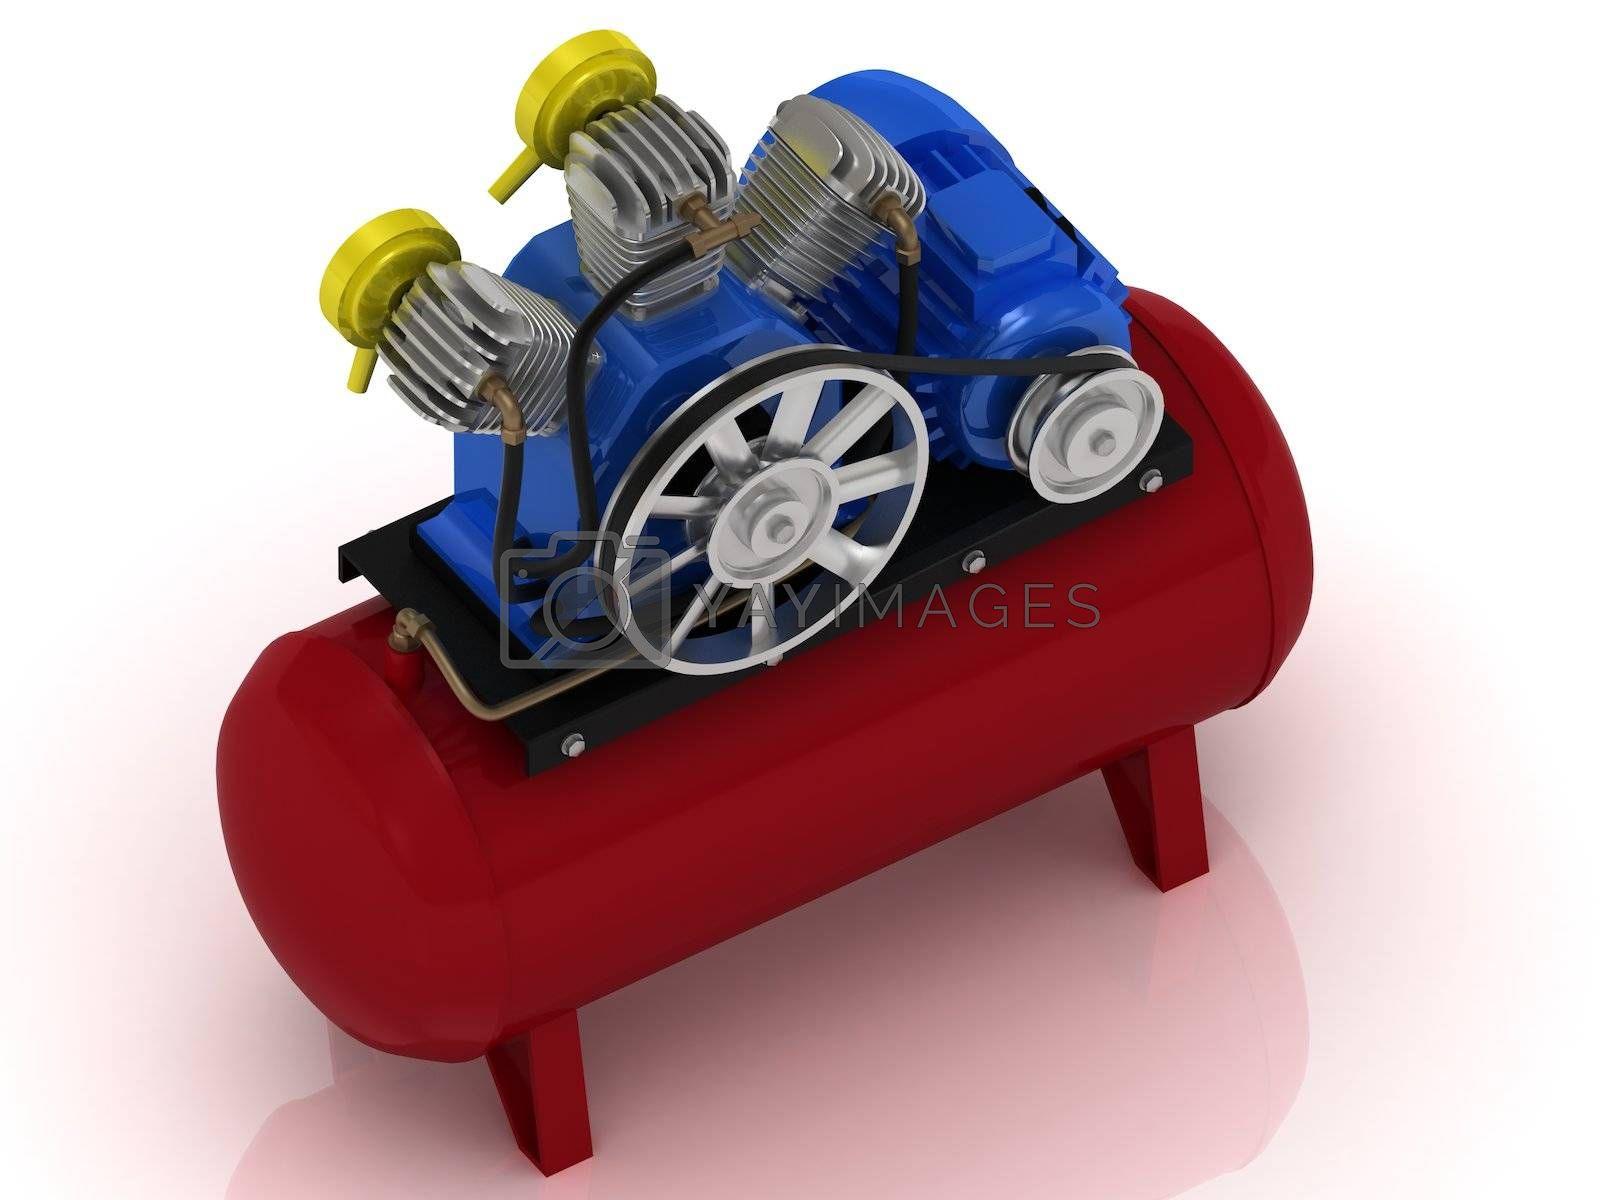 Royalty free image of Portable compressor with rotating pulley by GreenMost